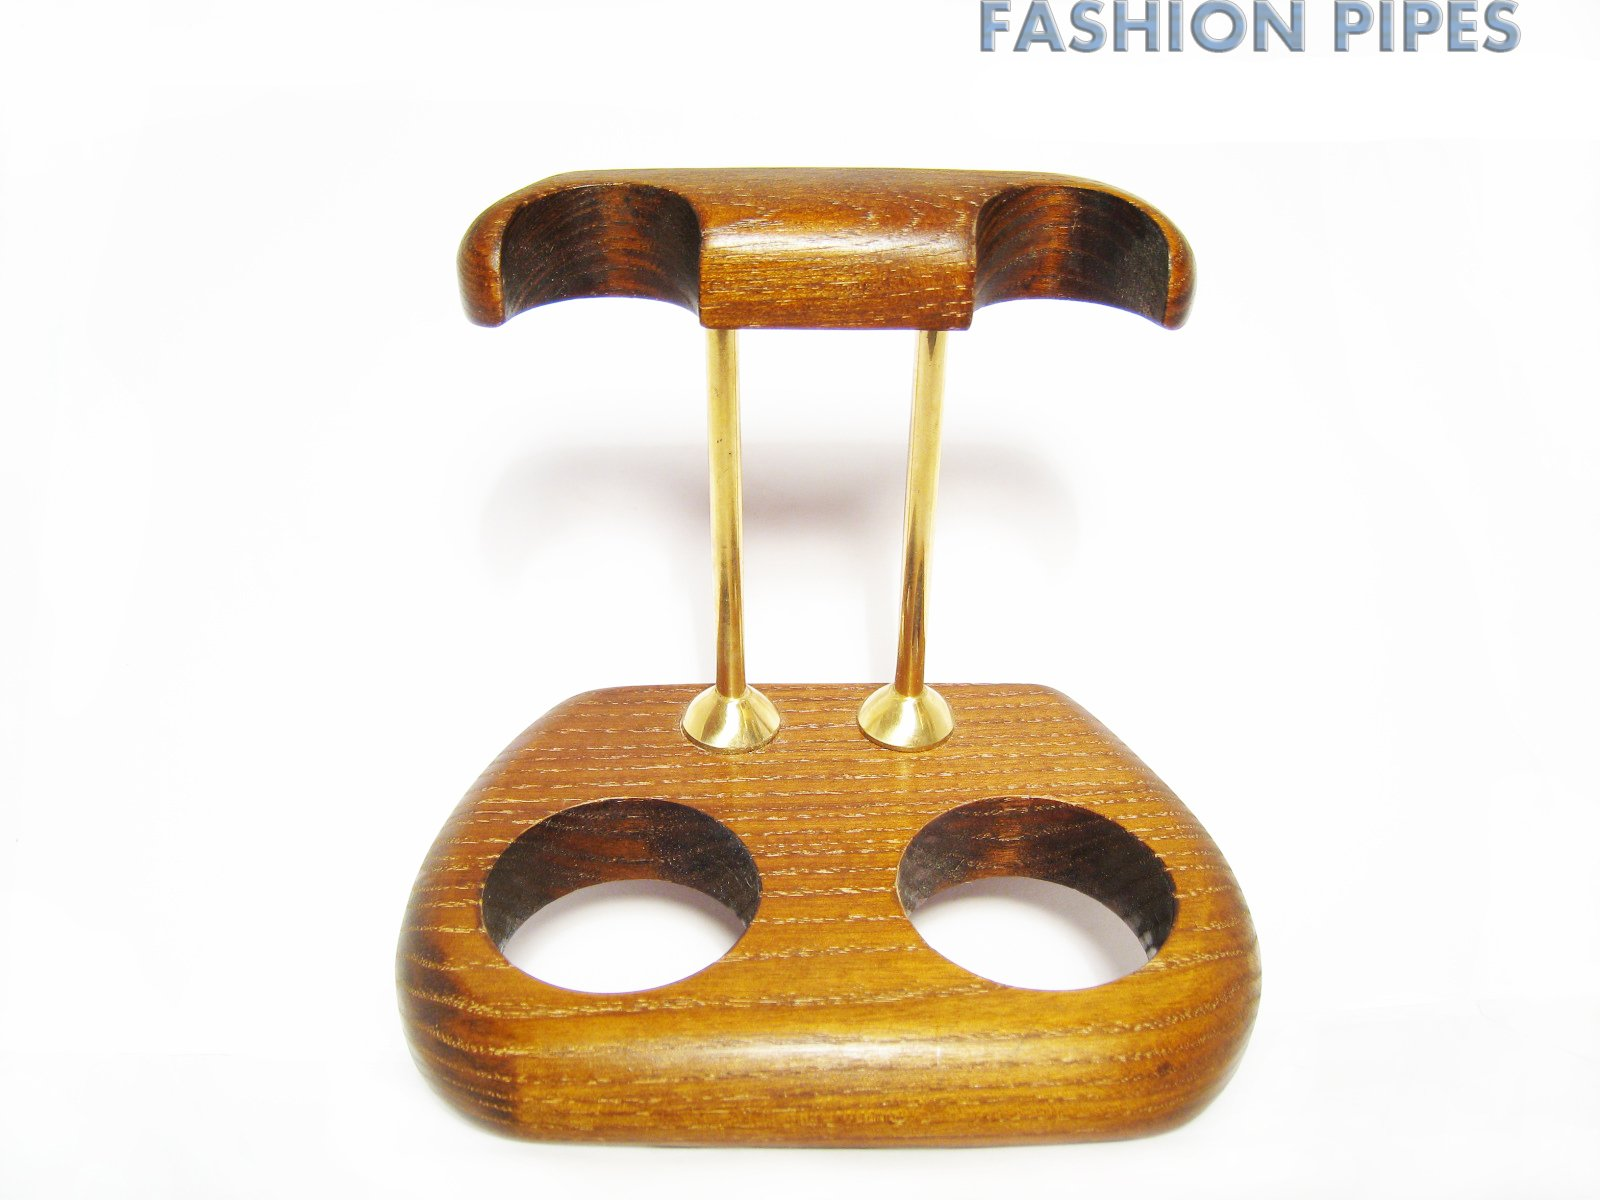 New Wooden Pipe Stand Rack Holder for 2 Tobacco Pipe - Smoking Pipe. Handcrafted (2)